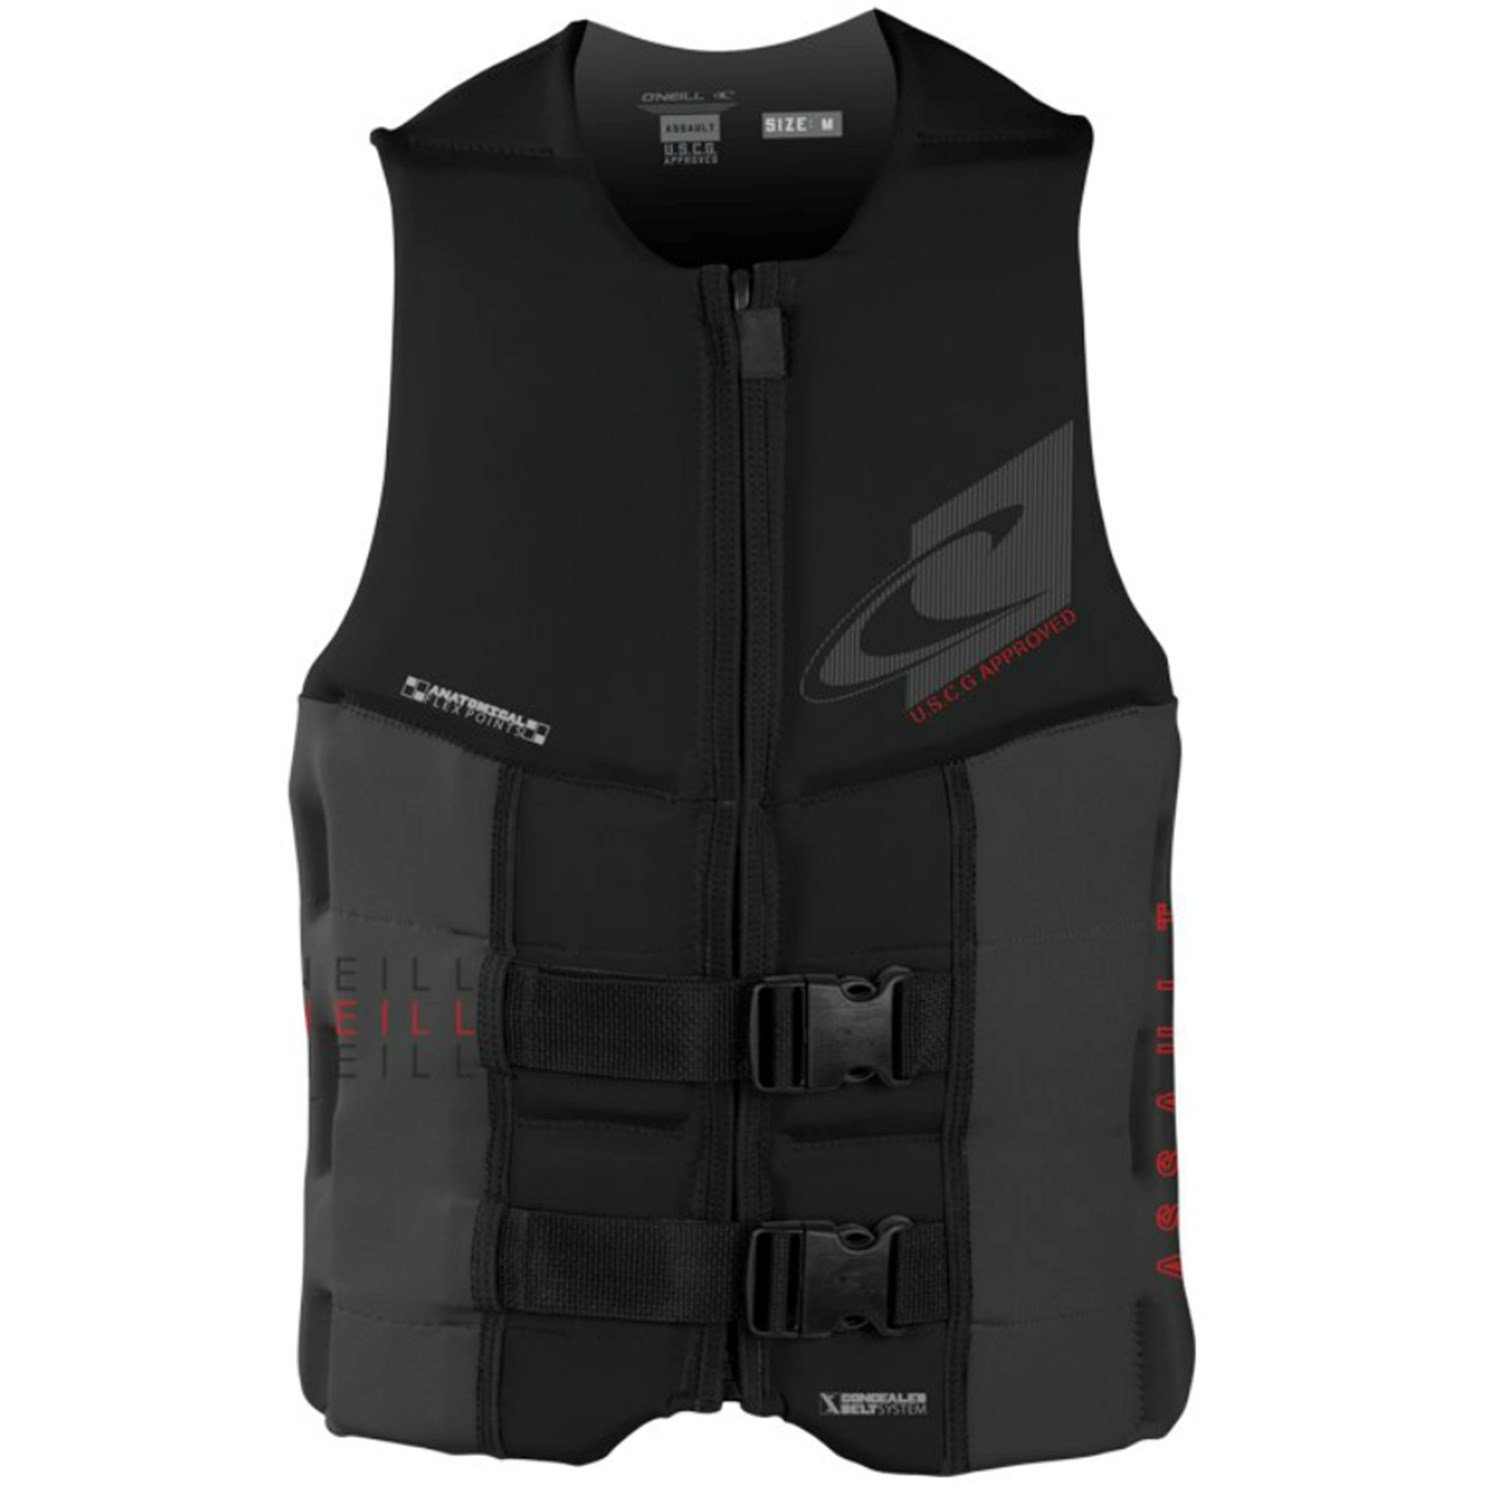 O'Neill Wetsuits Men's Assault USCG Life Vest by O'Neill Wetsuits (Image #1)